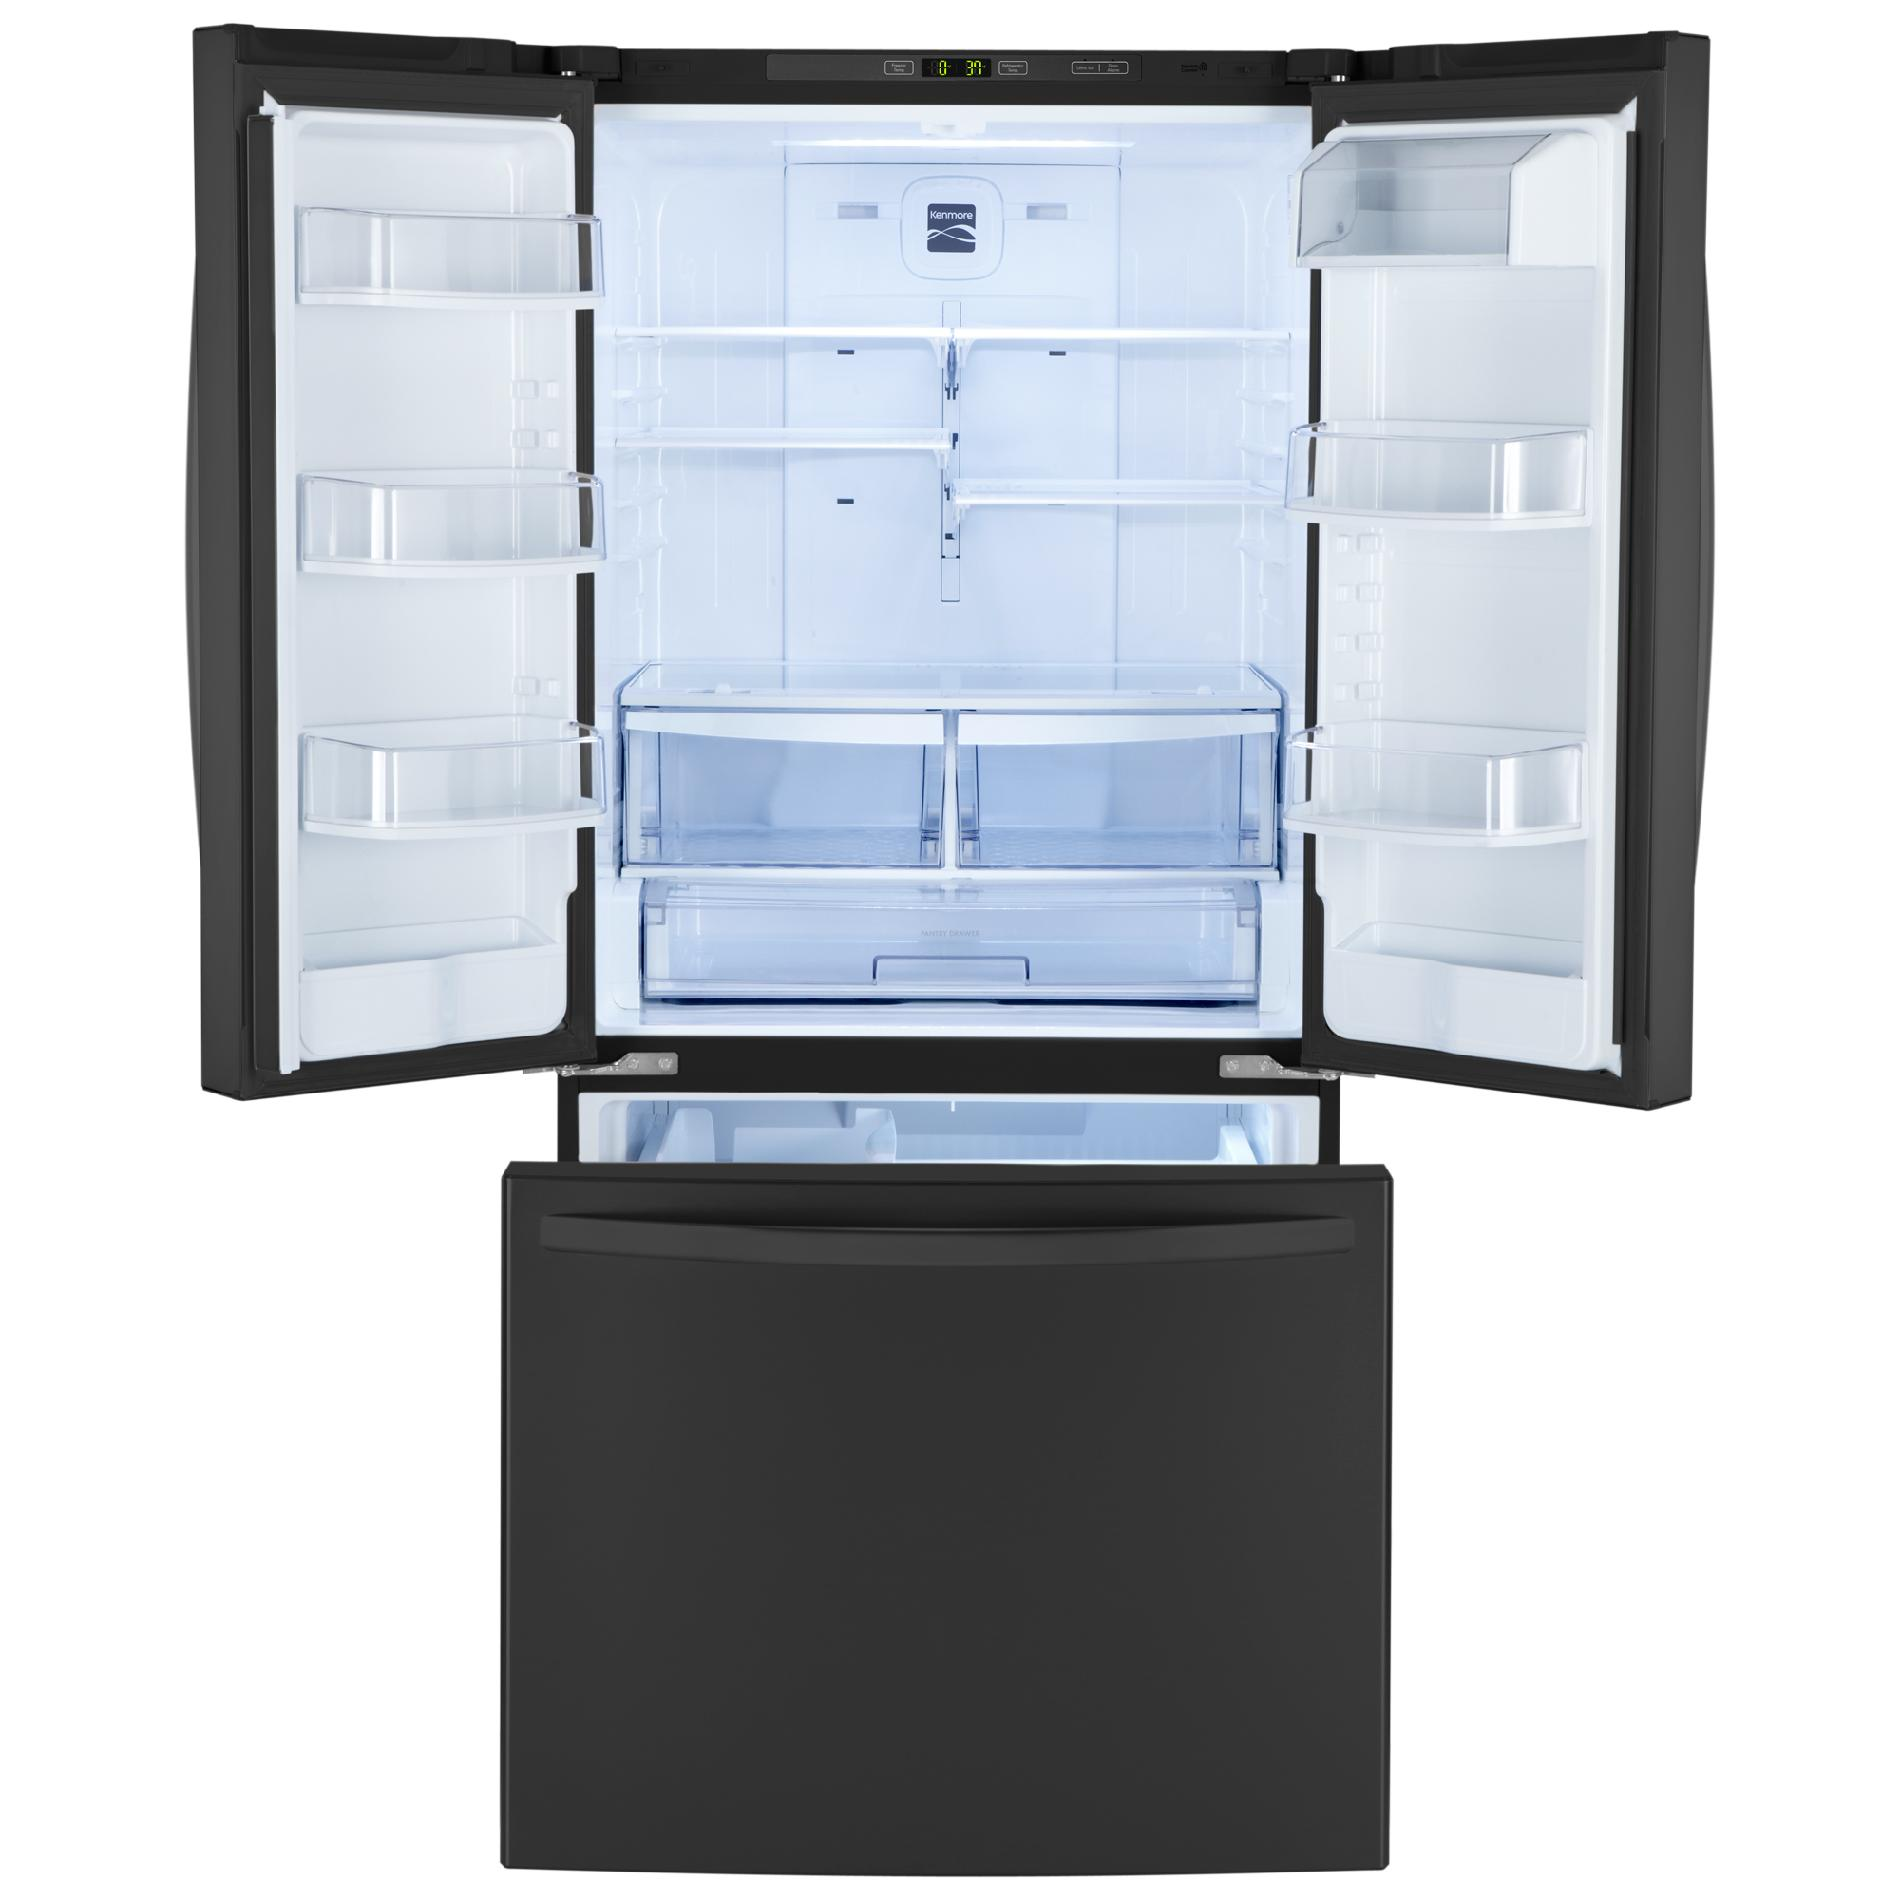 Kenmore 23.6 cu. ft.  French Door Bottom-Freezer Refrigerator - Black